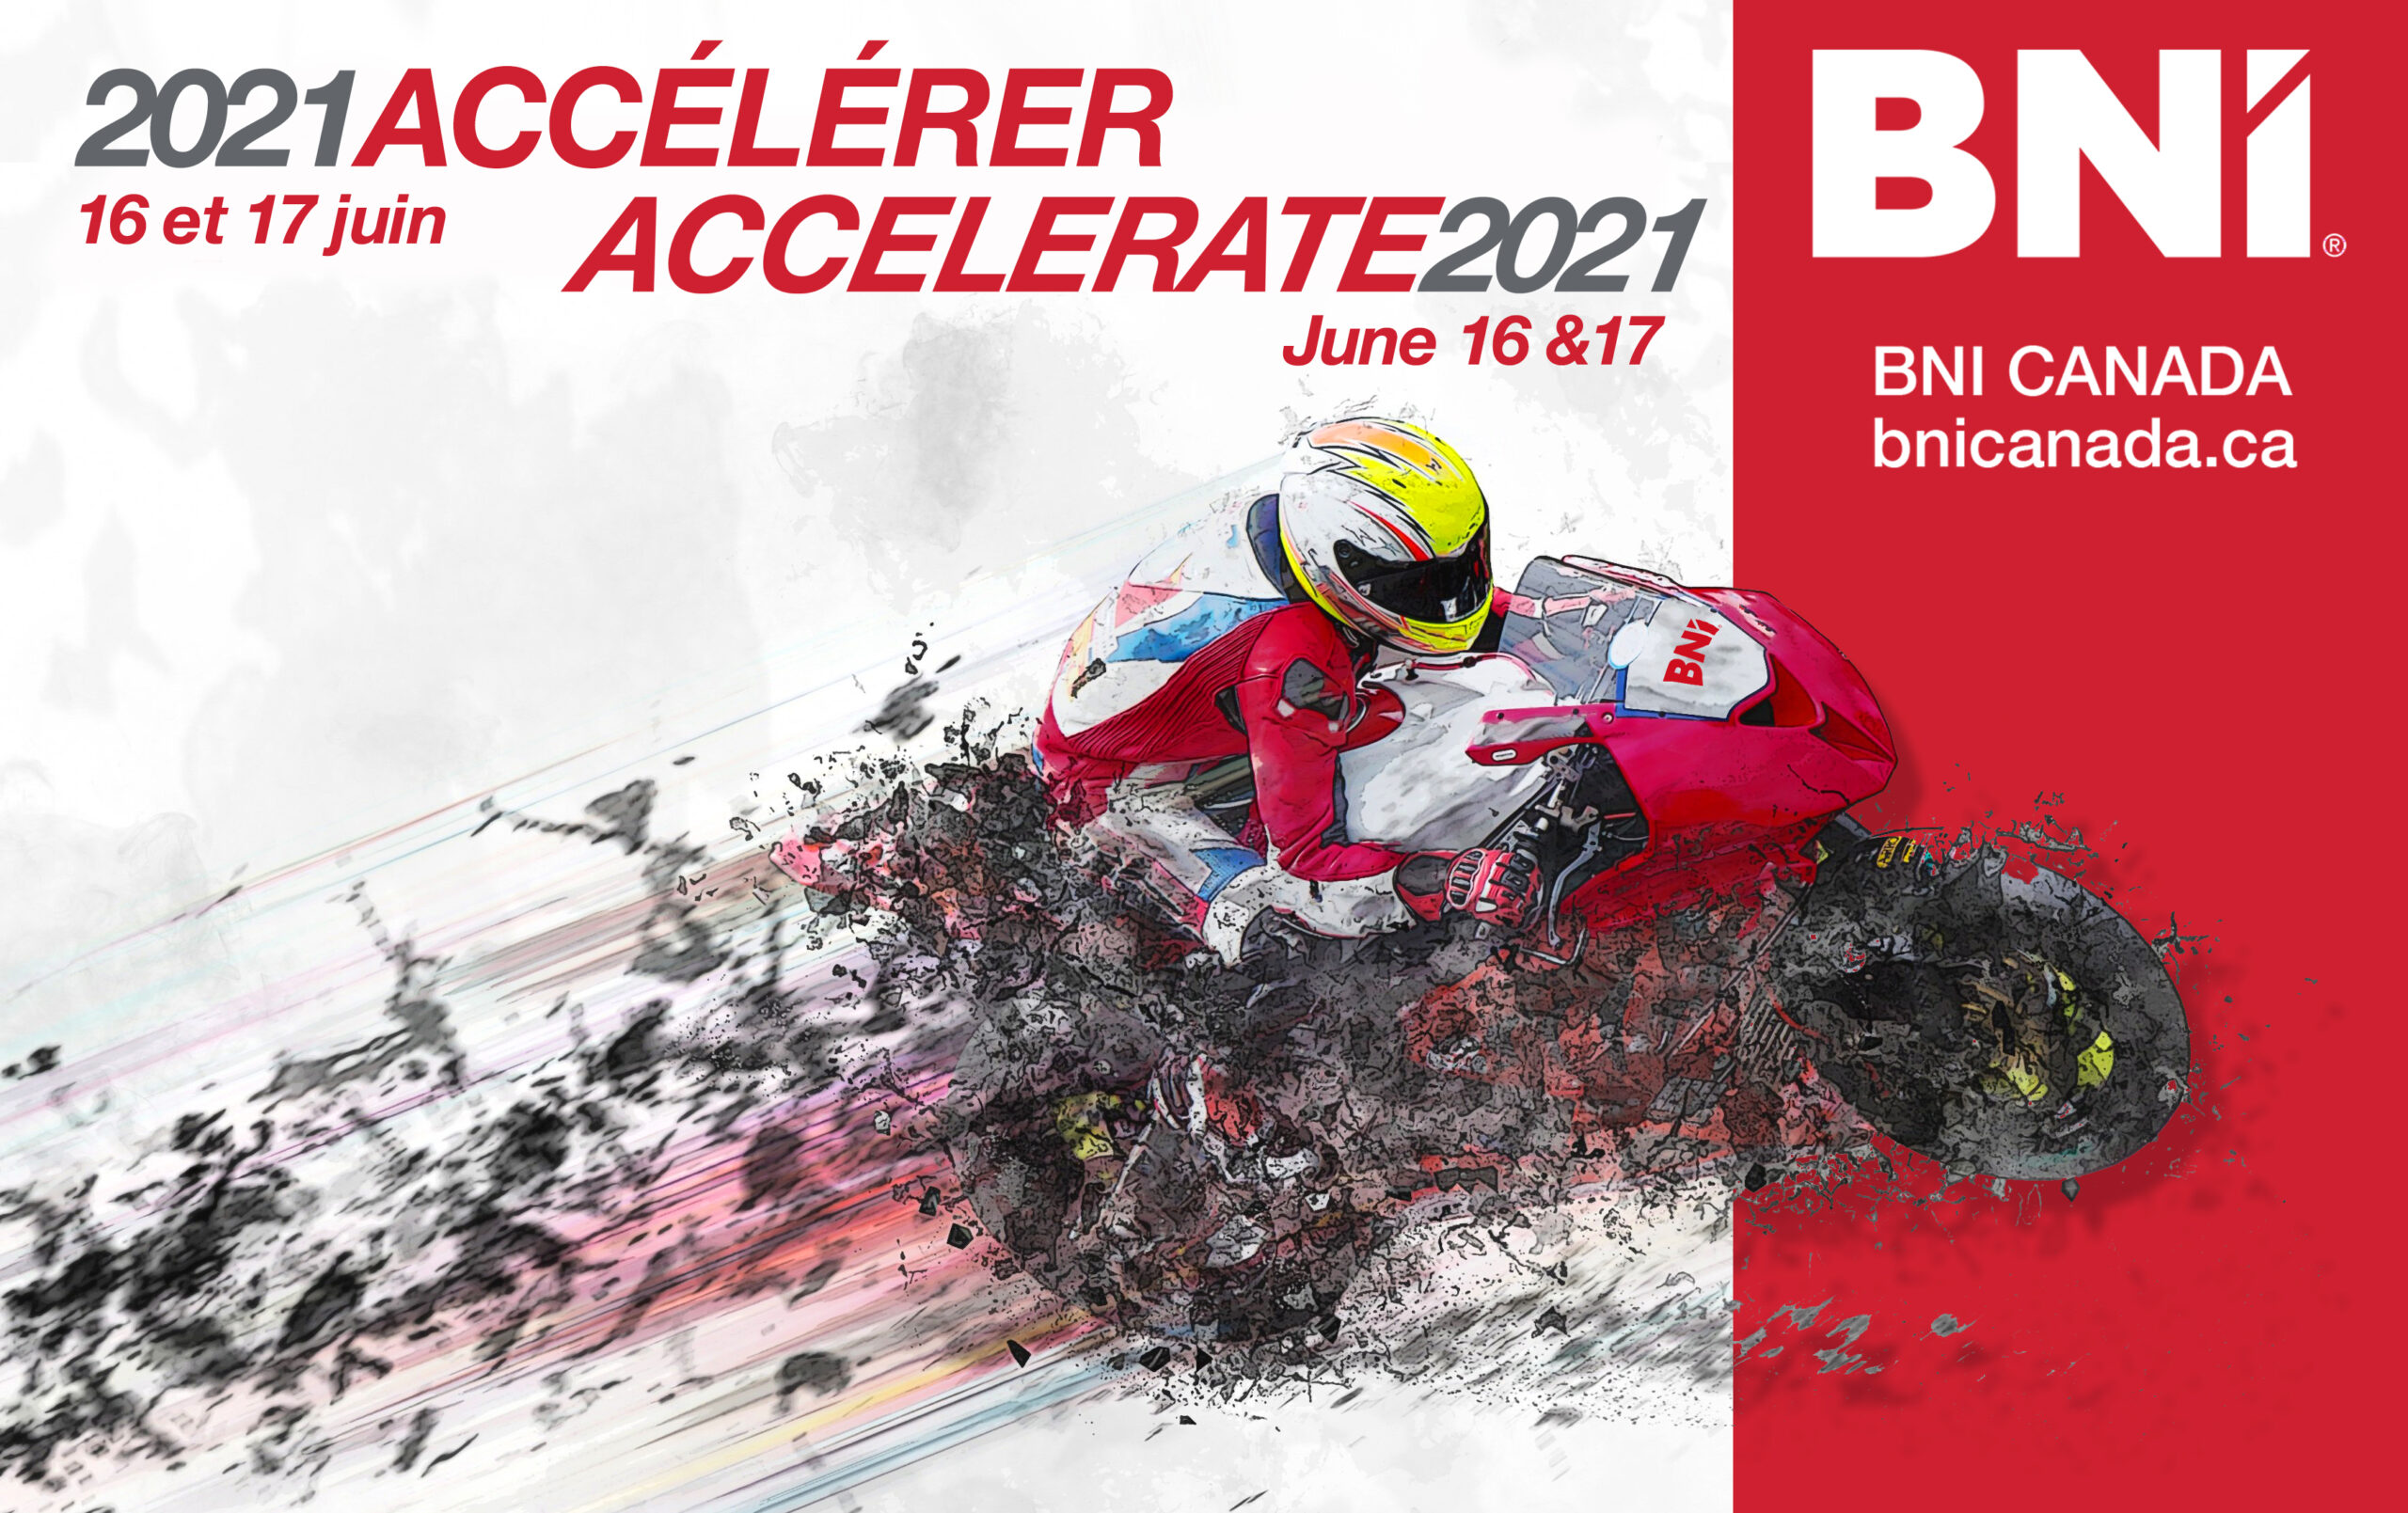 BNI_Canada_Accelerate_motorcycle_SAVE